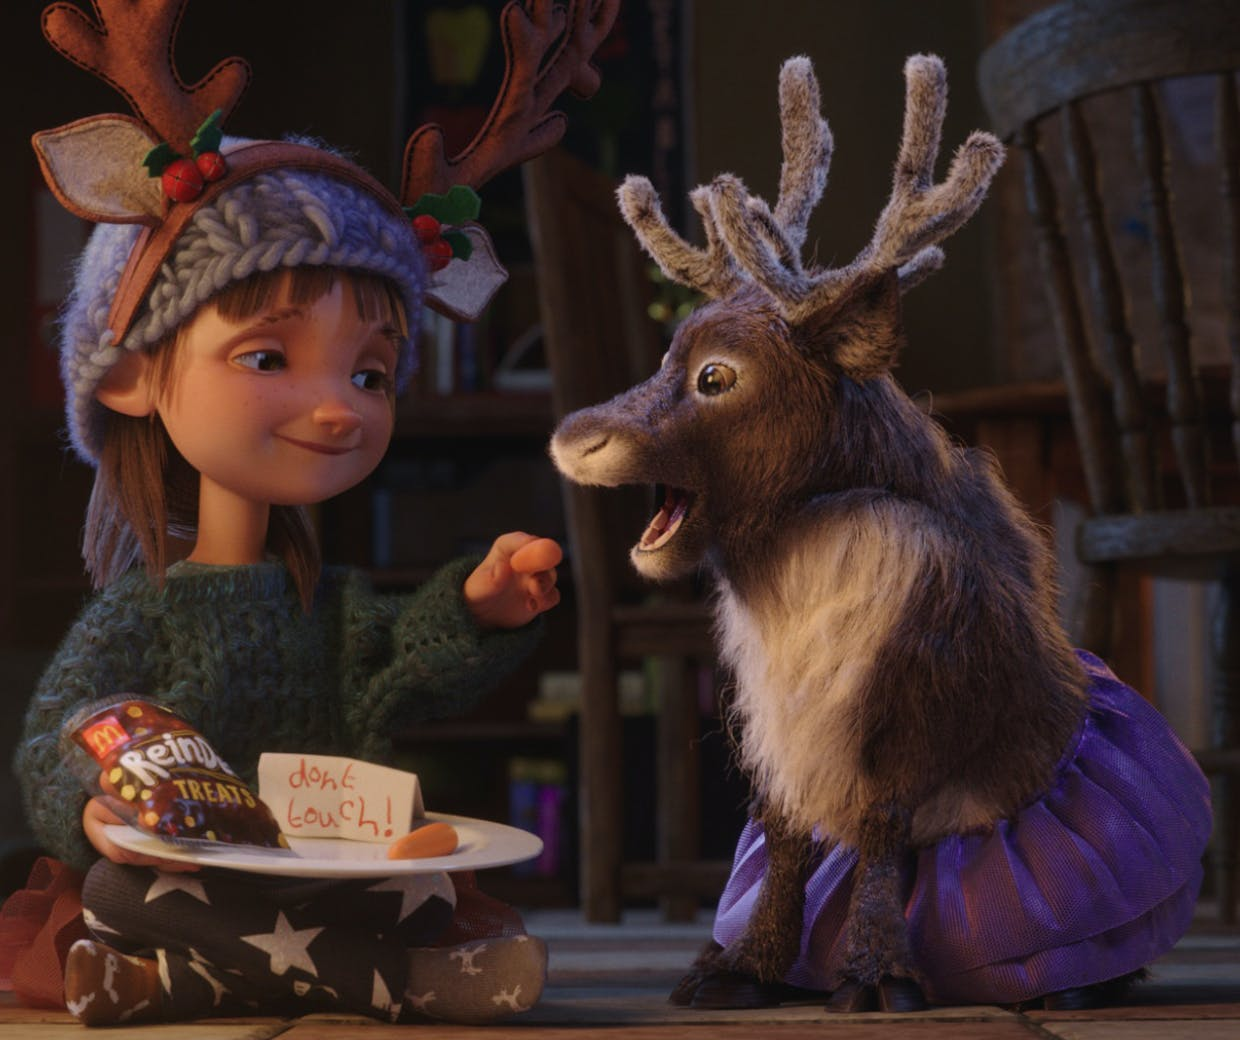 McDonald's celebrates the power of imagination in Christmas ad